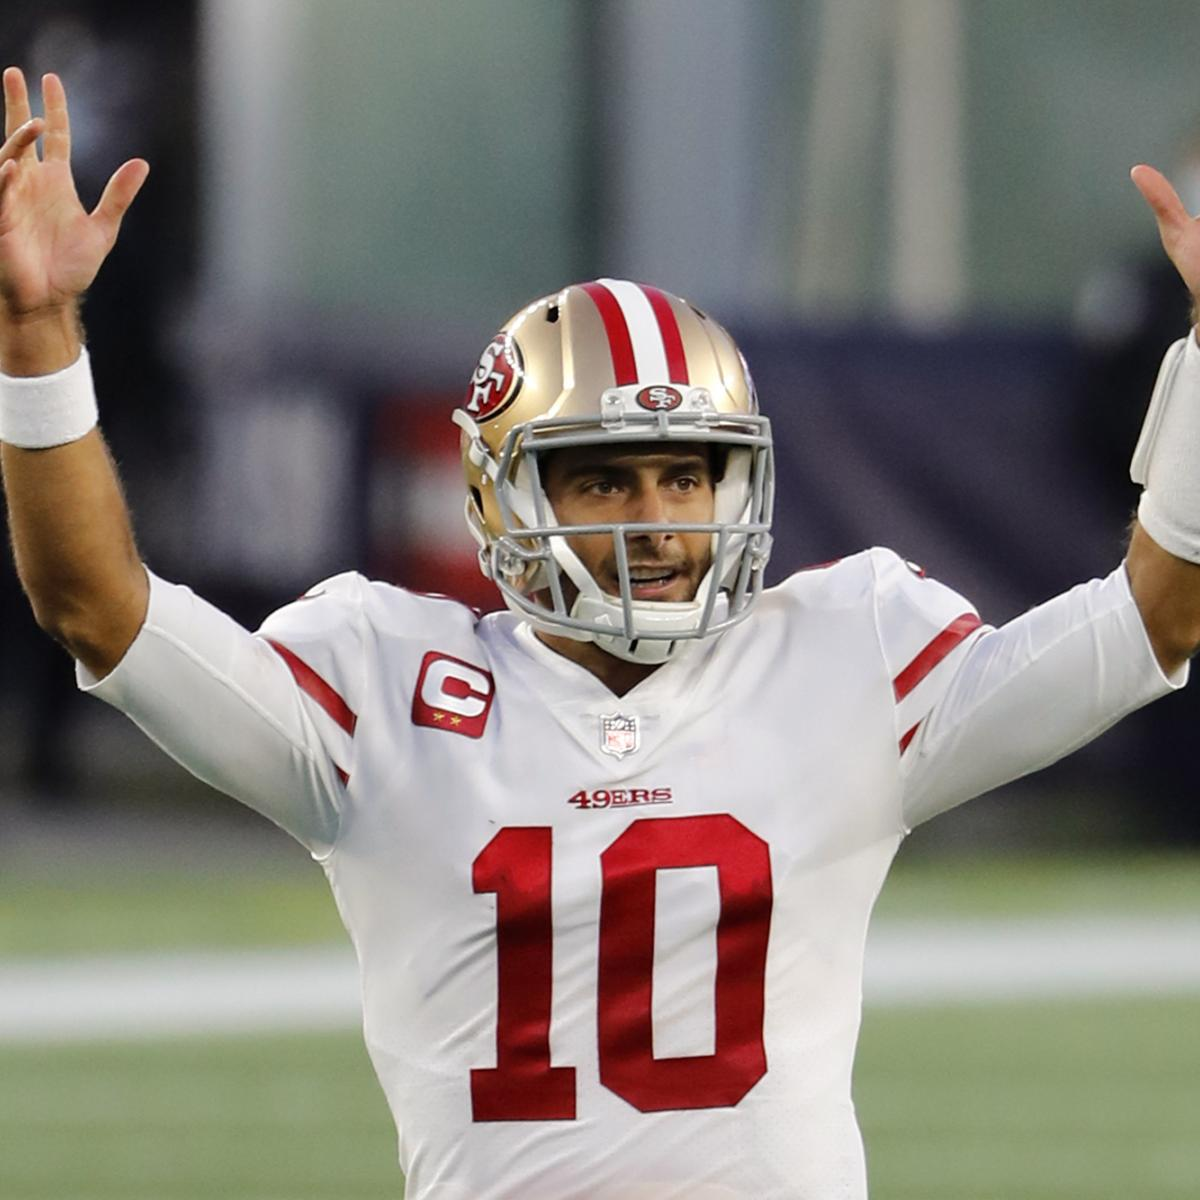 Potential Landing Spots Trade Packages for Jimmy G After 49ers Trade Up – Bleacher Report